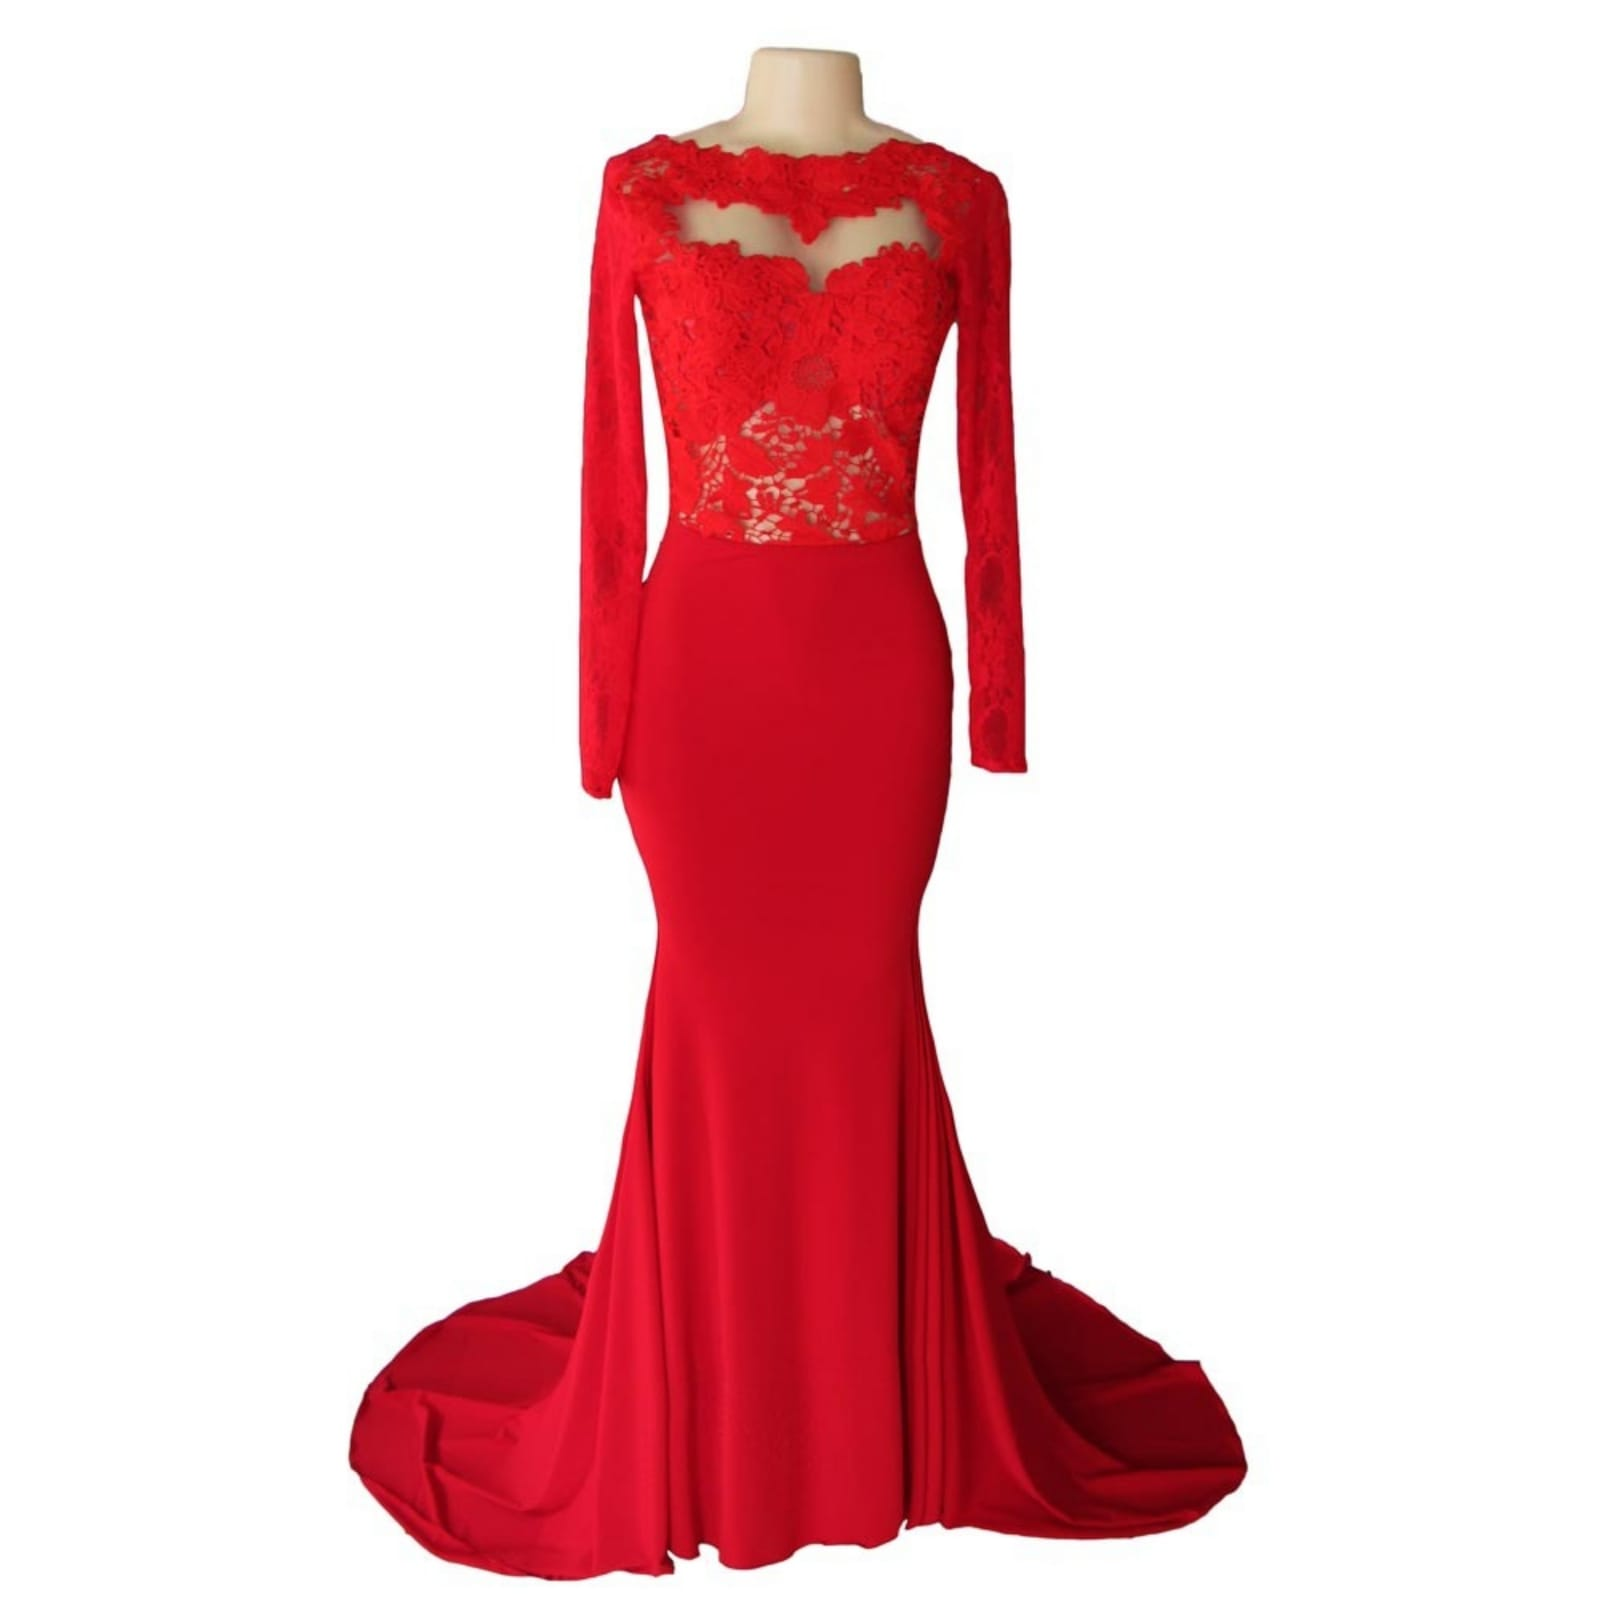 Elegant red body hugging matric farewell dress 8 i created an elegant red body hugging matric farewell dress for brenda's important night. She made an entrance with this sophisticated design, with a lace bodice, long fitted lace sleeves, a low open back adding some sensuality to the look and a wide train for dramatic effect.